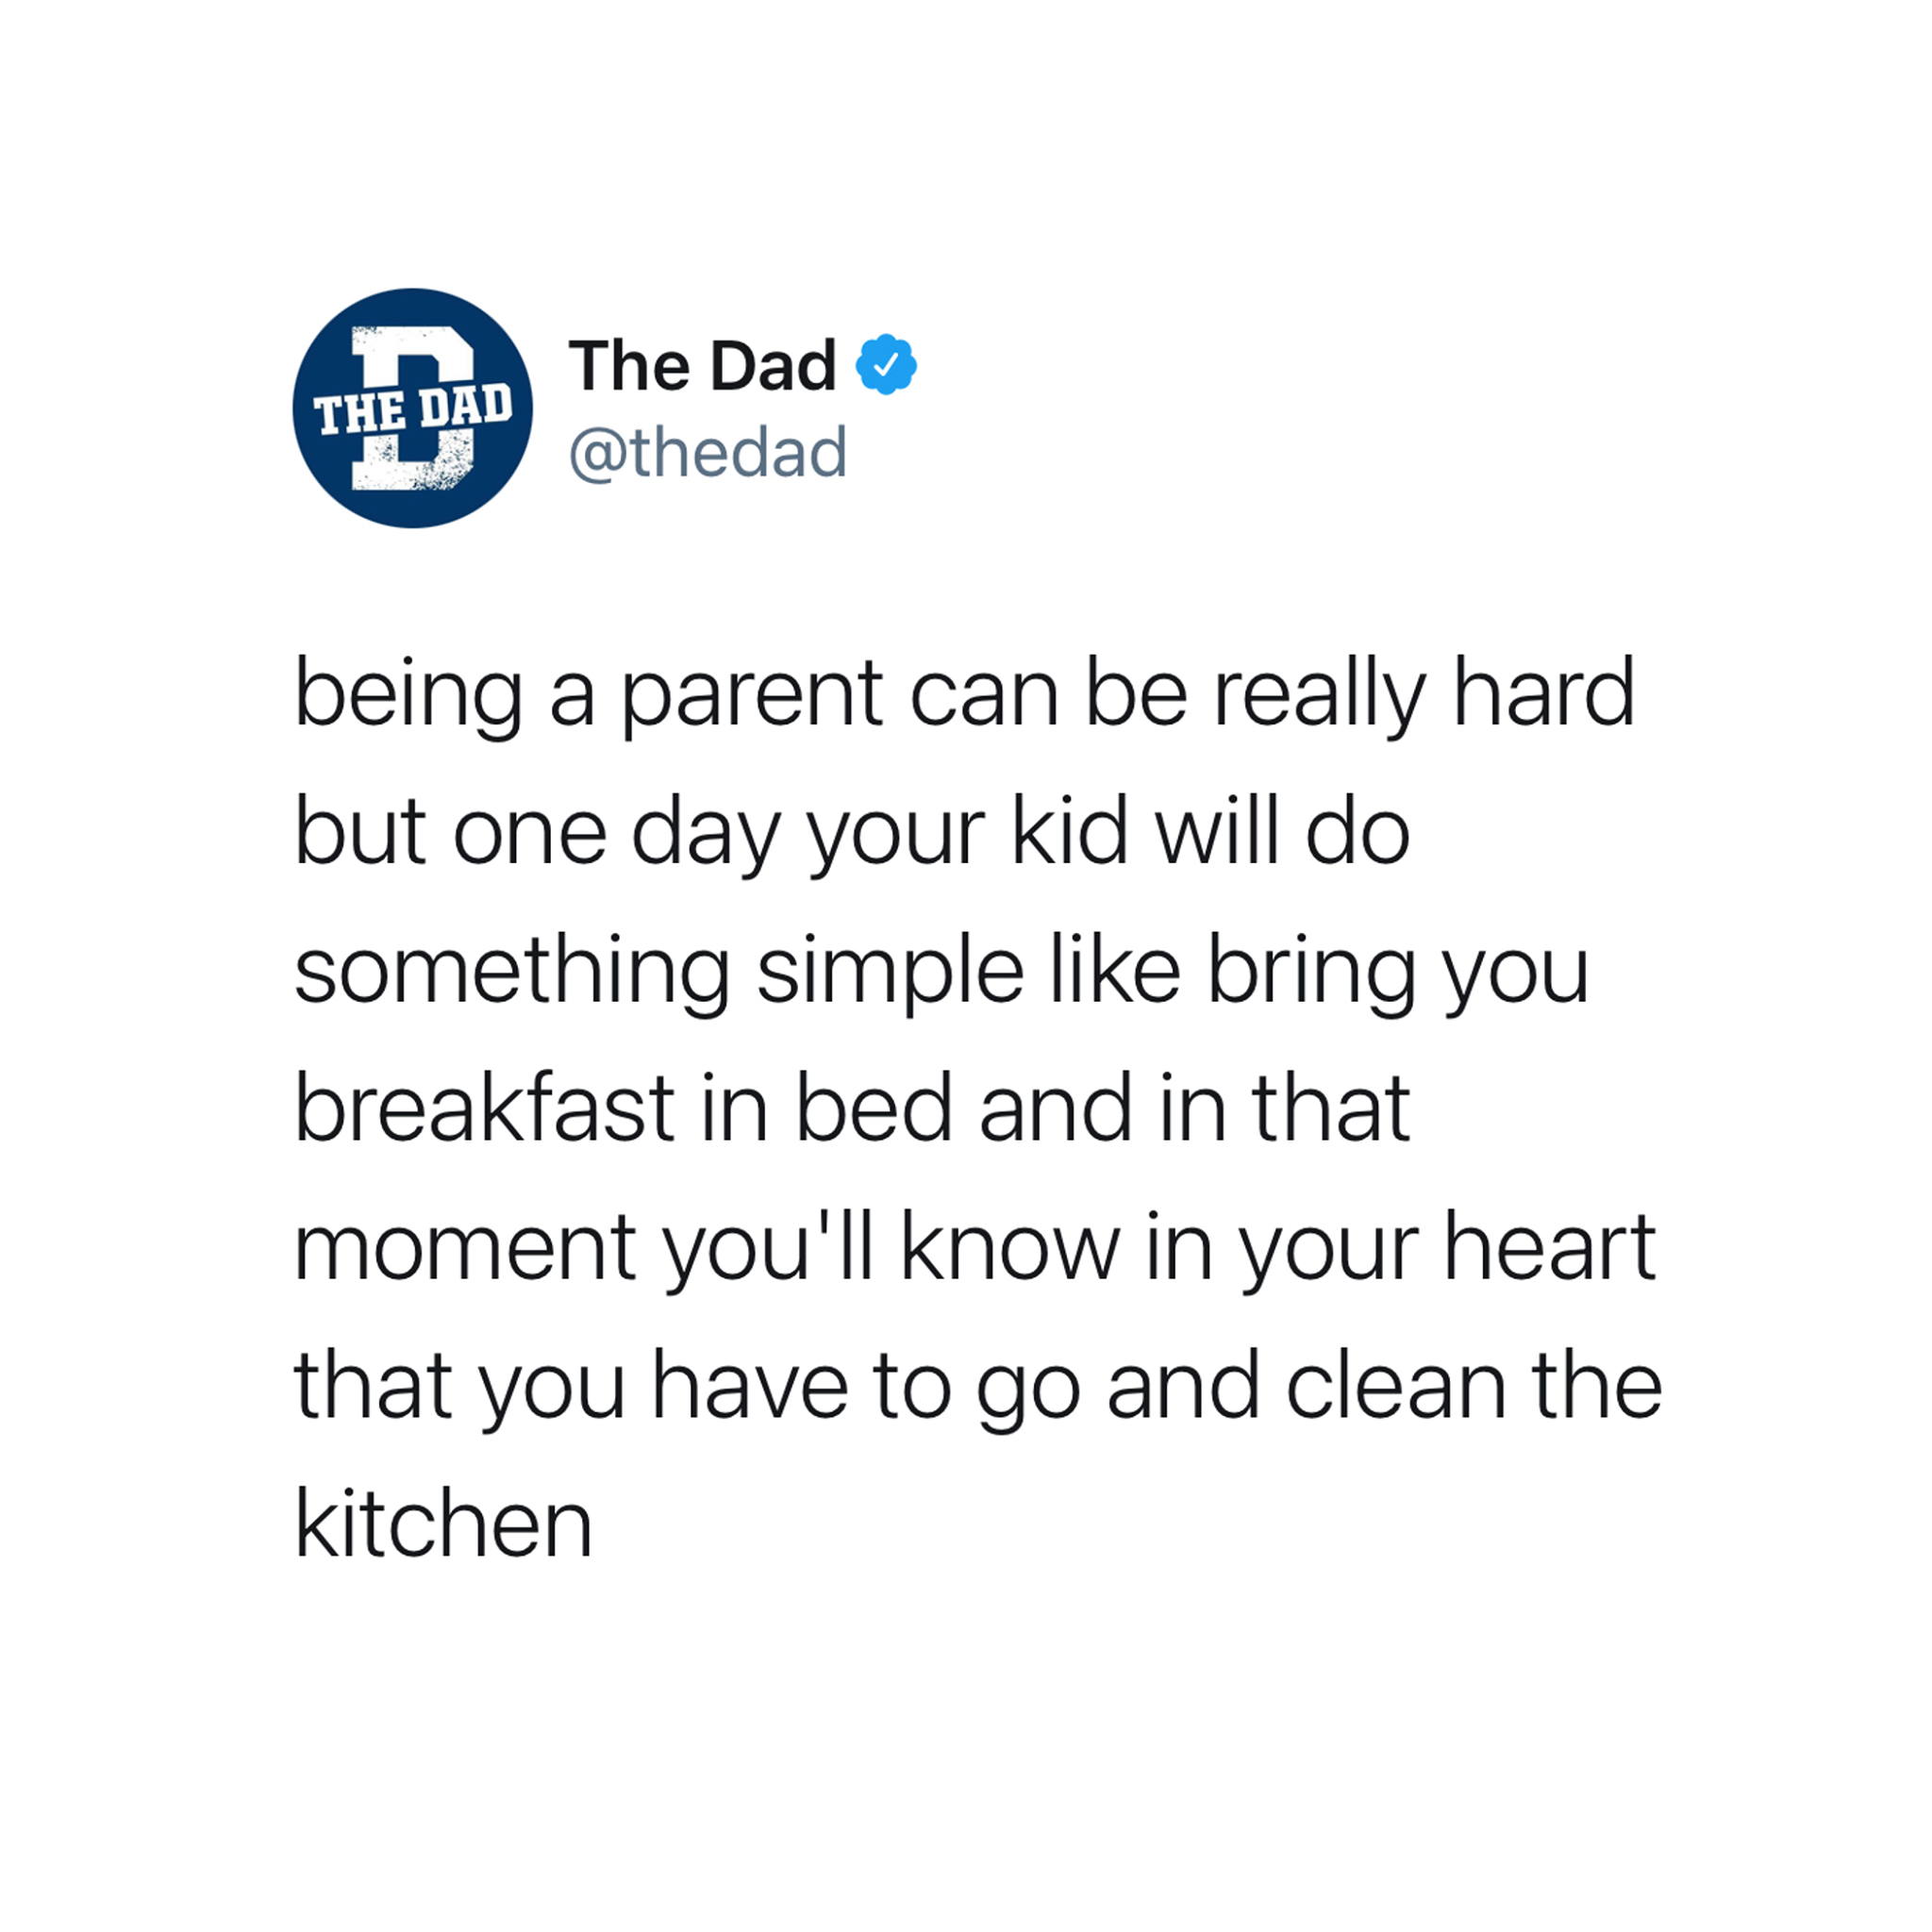 being a parent can be really hard but one day your kid will do something simple like bring you breakfast in bed, and in that moment you'll know in your heart that you have to go and clean the kitchen